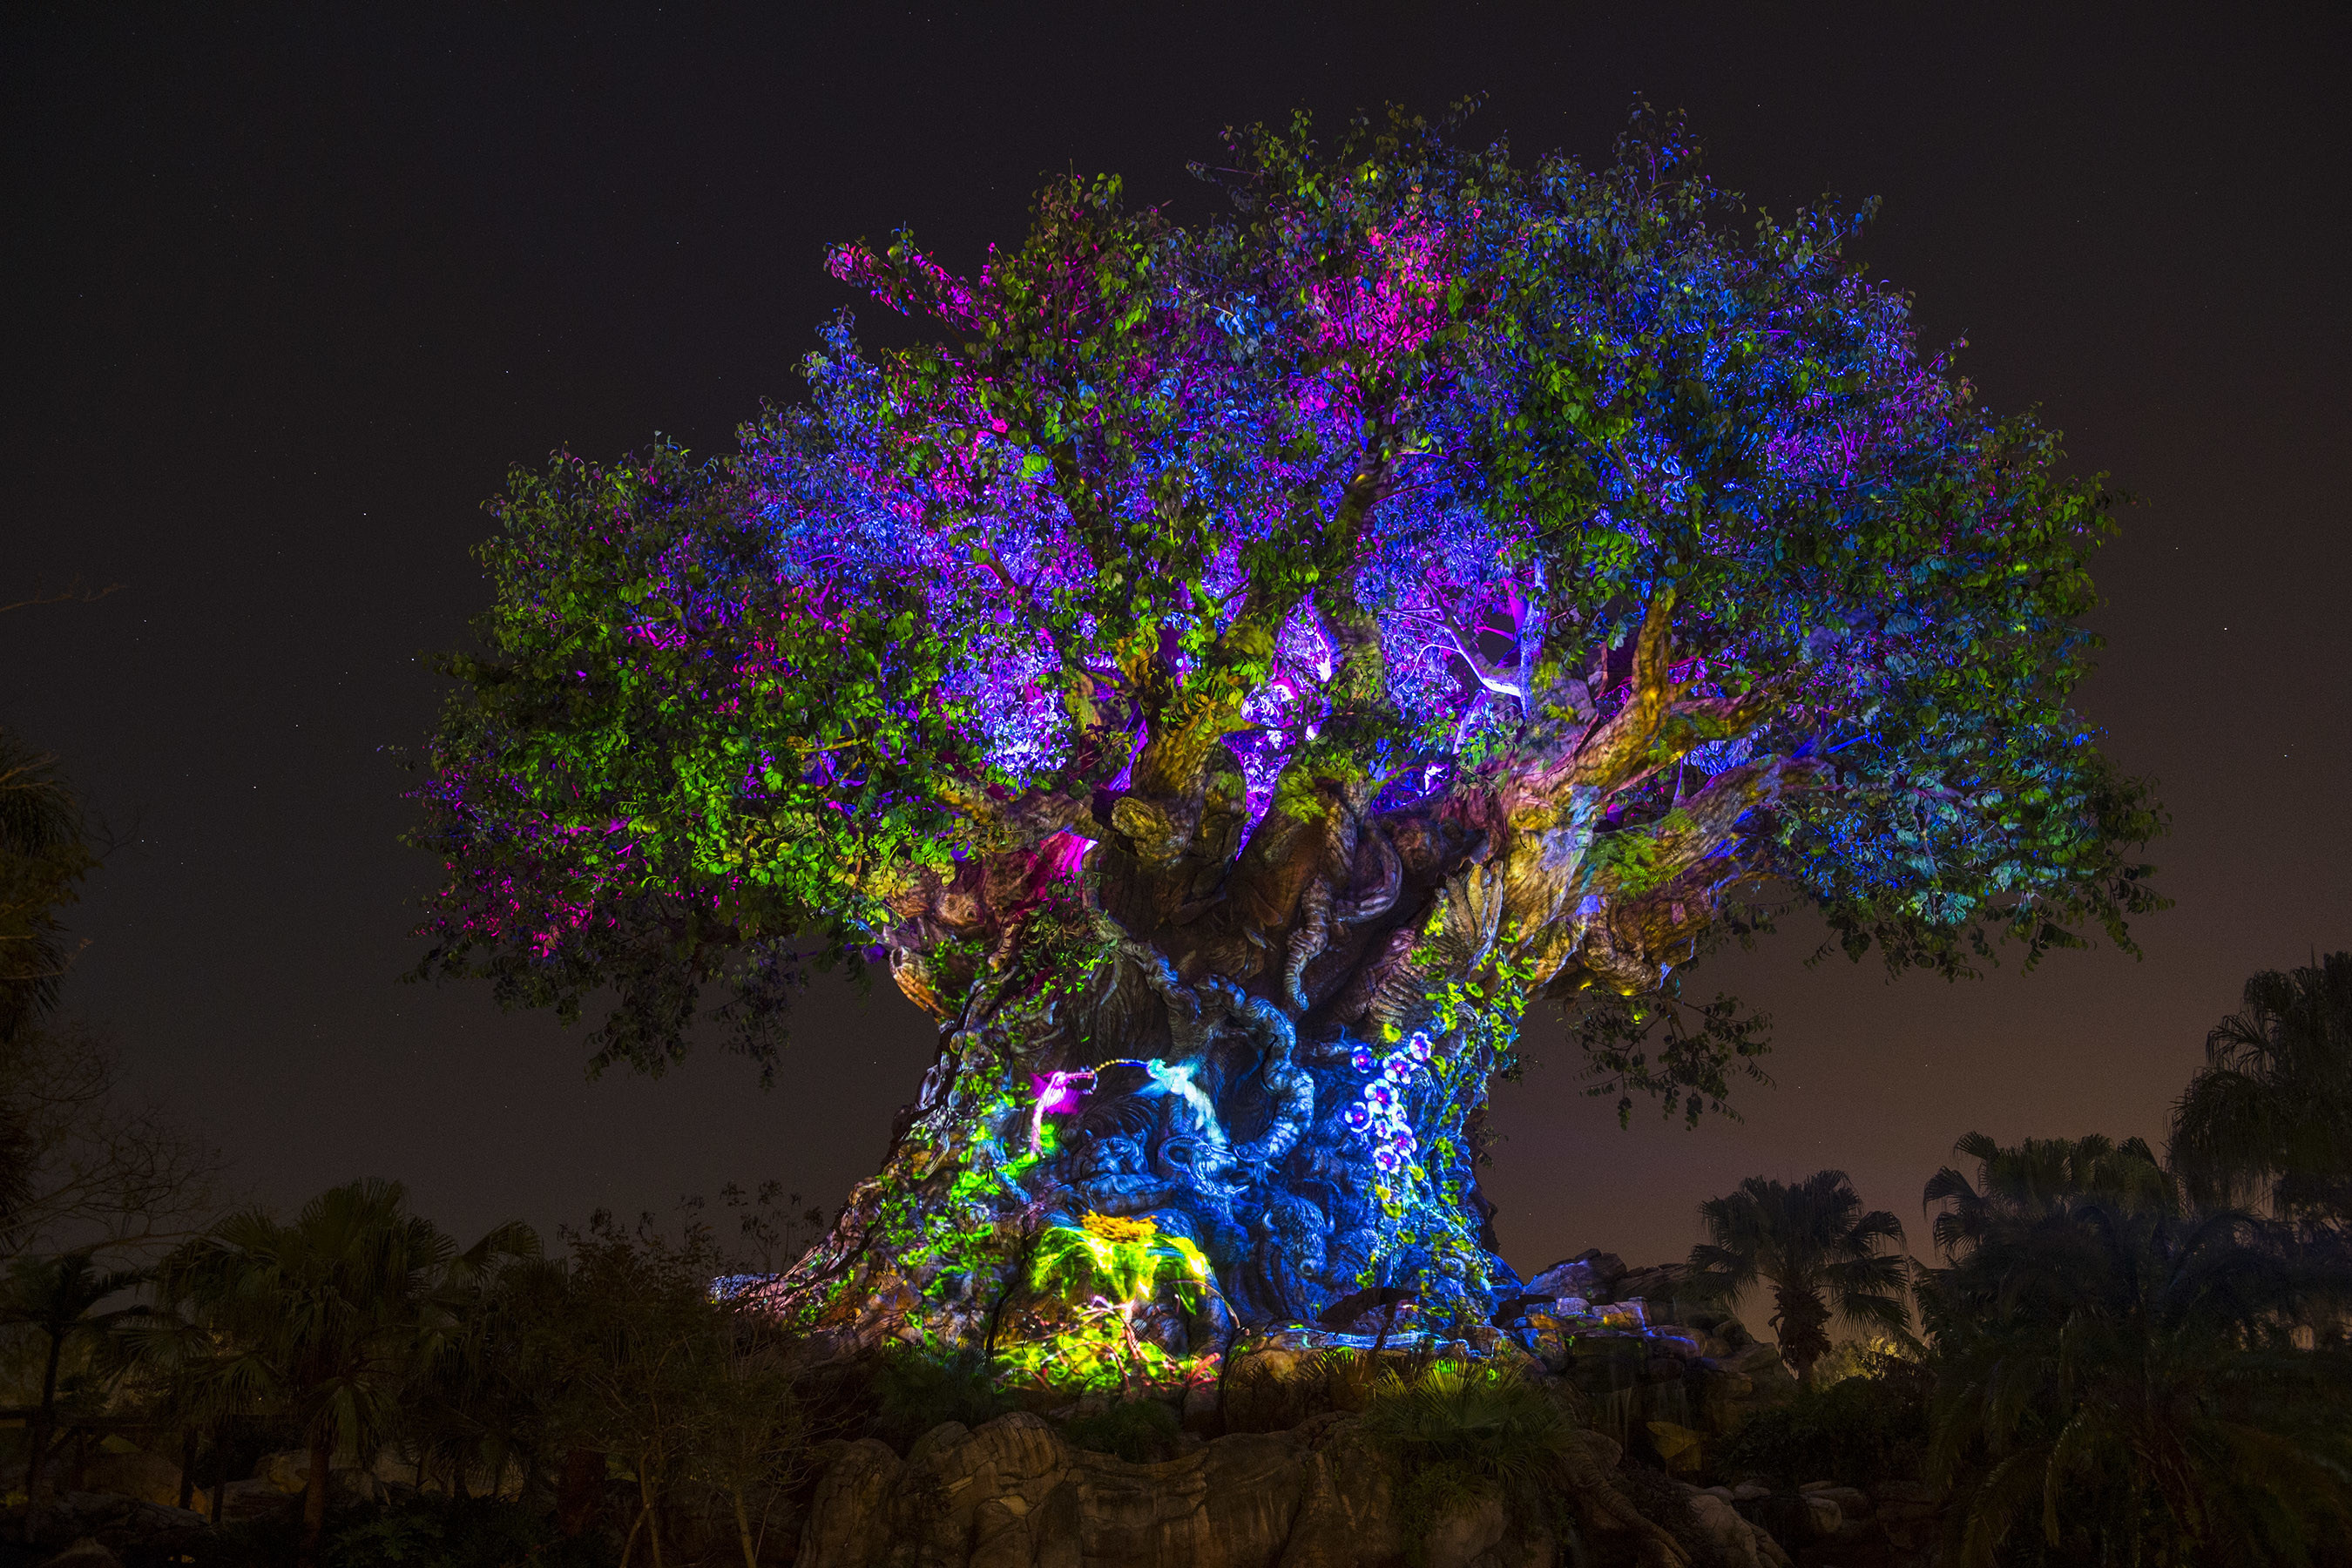 """Disney's Animal Kingdom's iconic Tree of Life will undergo extraordinary """"awakenings"""" throughout each evening as the animal spirits are brought to life by magical fireflies that reveal colorful stories of wonder and enchantment. Projections of nature scenes take on a magical quality as they appear to dramatically emanate from within the Tree of Life. (David Roark, photographer)"""